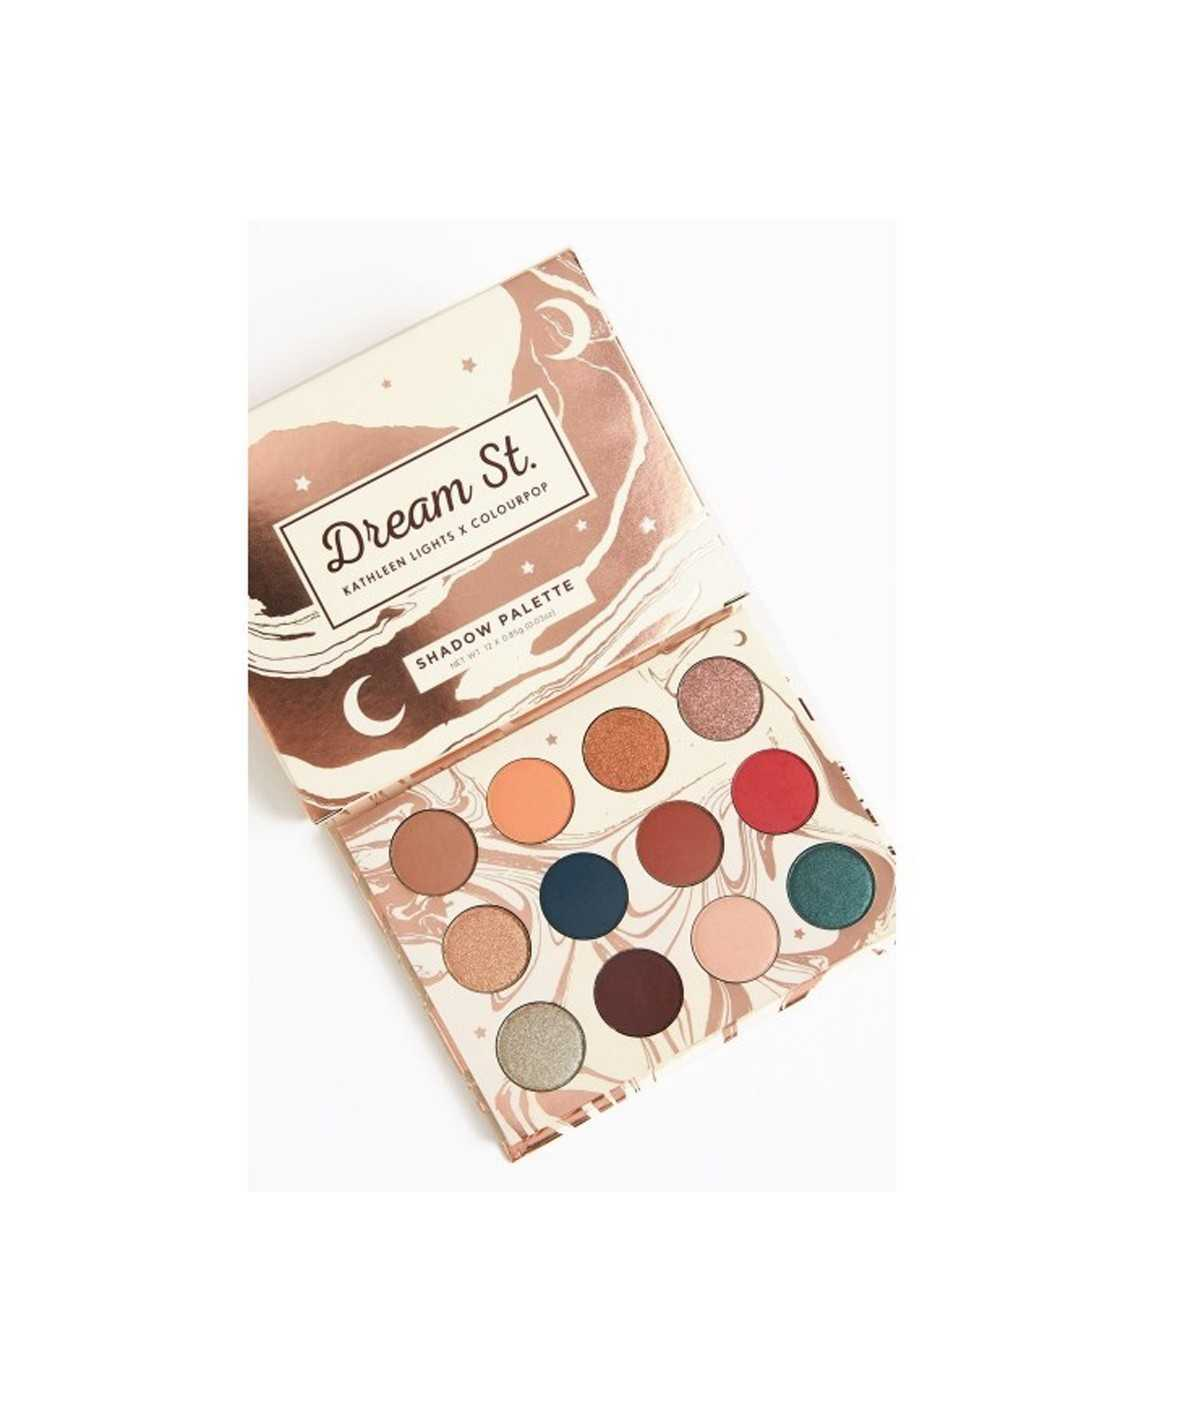 ColourPop Eyeshadow Palette - Dream St.